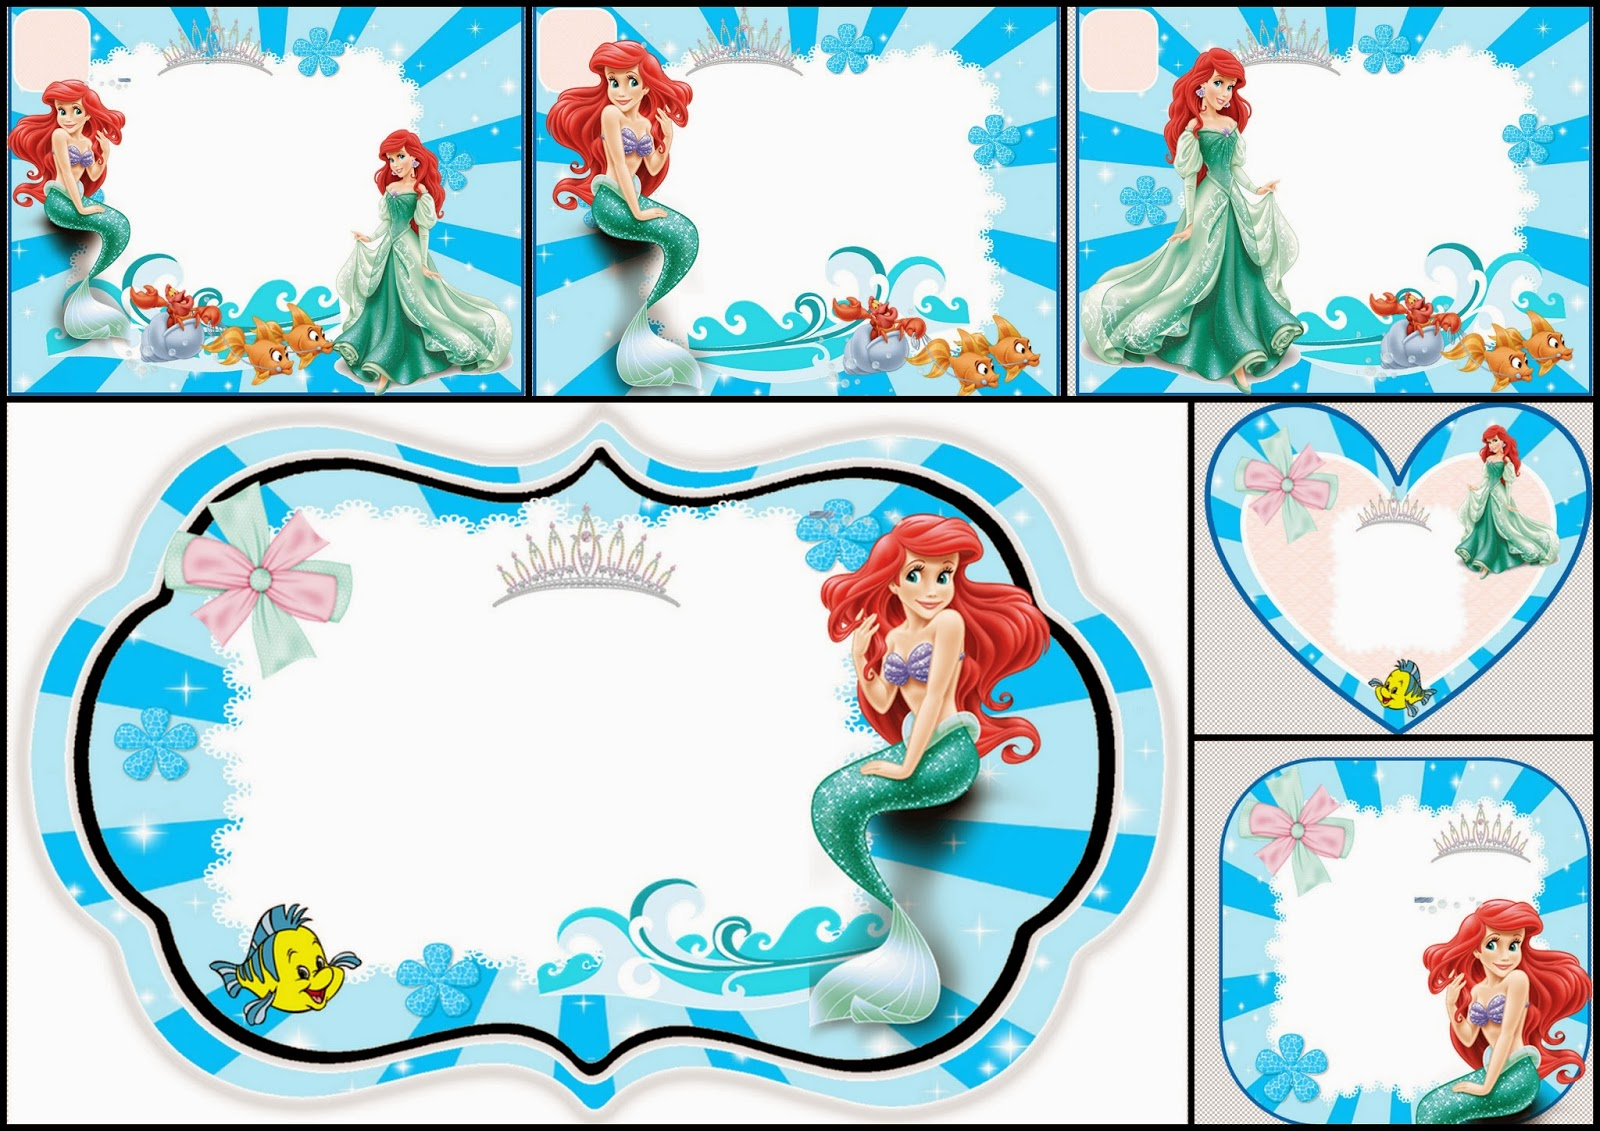 The Little Mermaid Free Printable Invitations, Cards or Photo Frames.